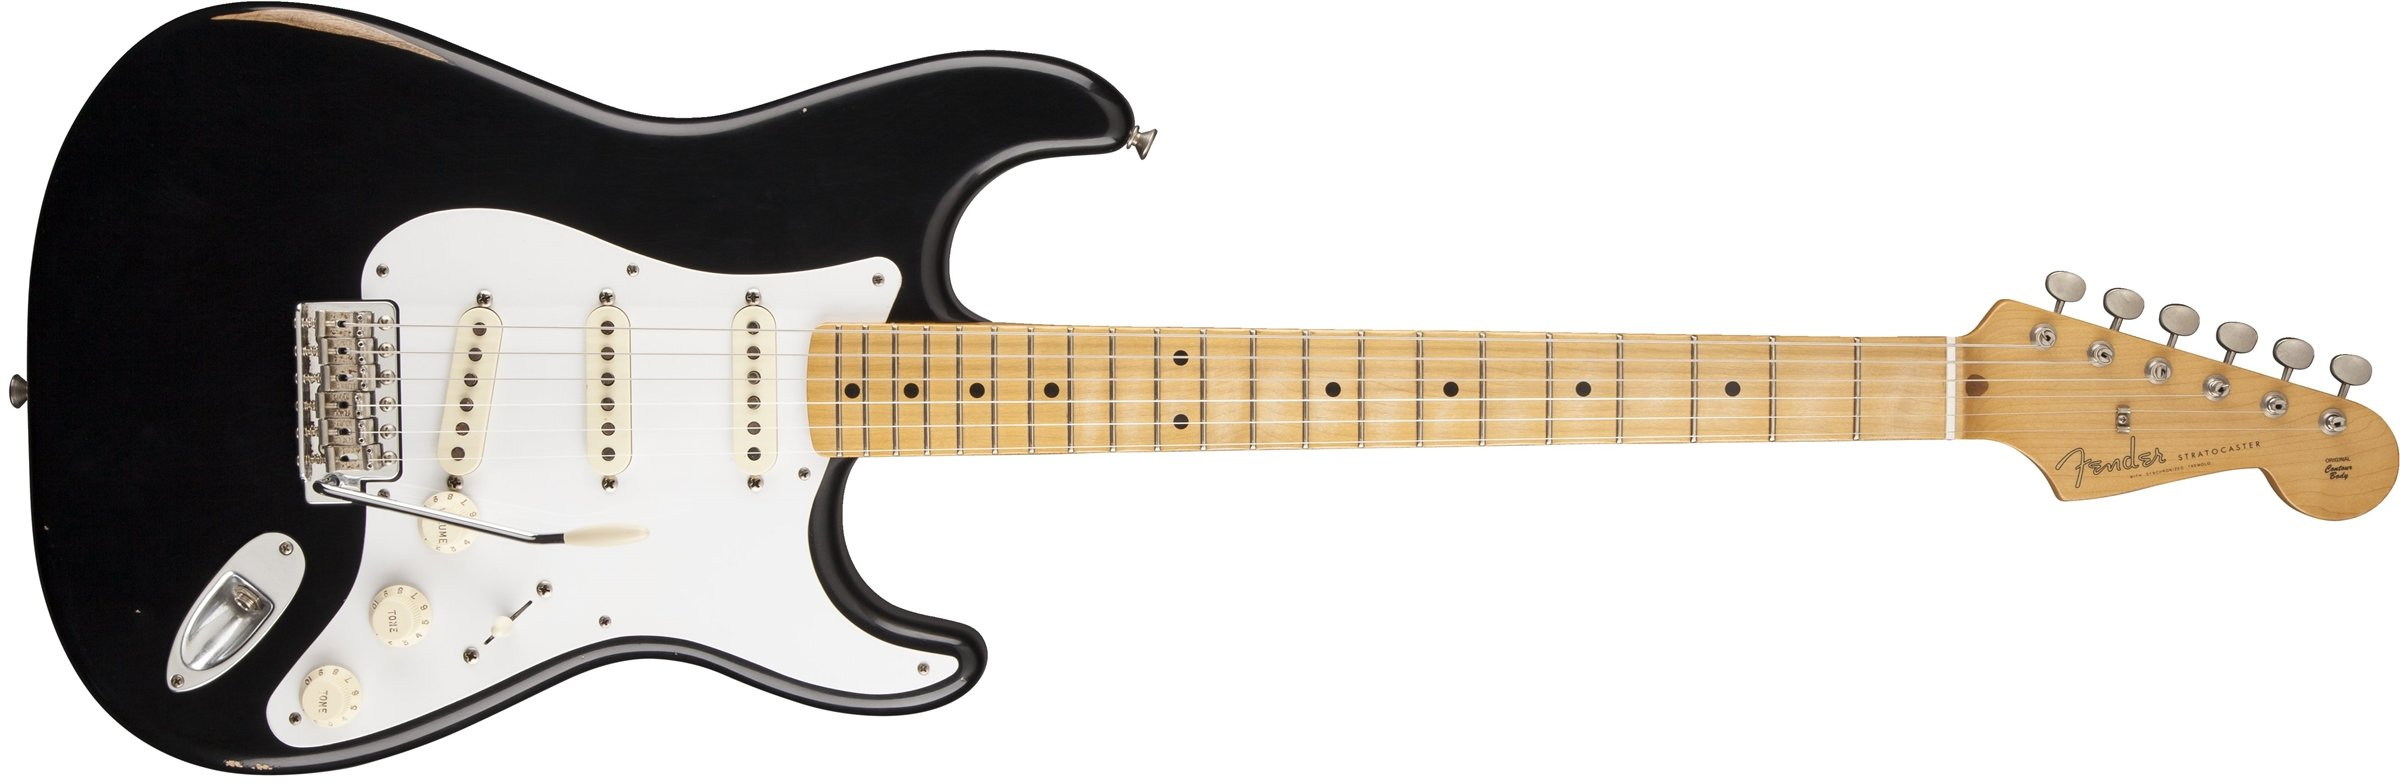 Cheap Fender Road Worn 50s Stratocaster Electric Guitar Black Maple Fretboard Black Friday & Cyber Monday 2019